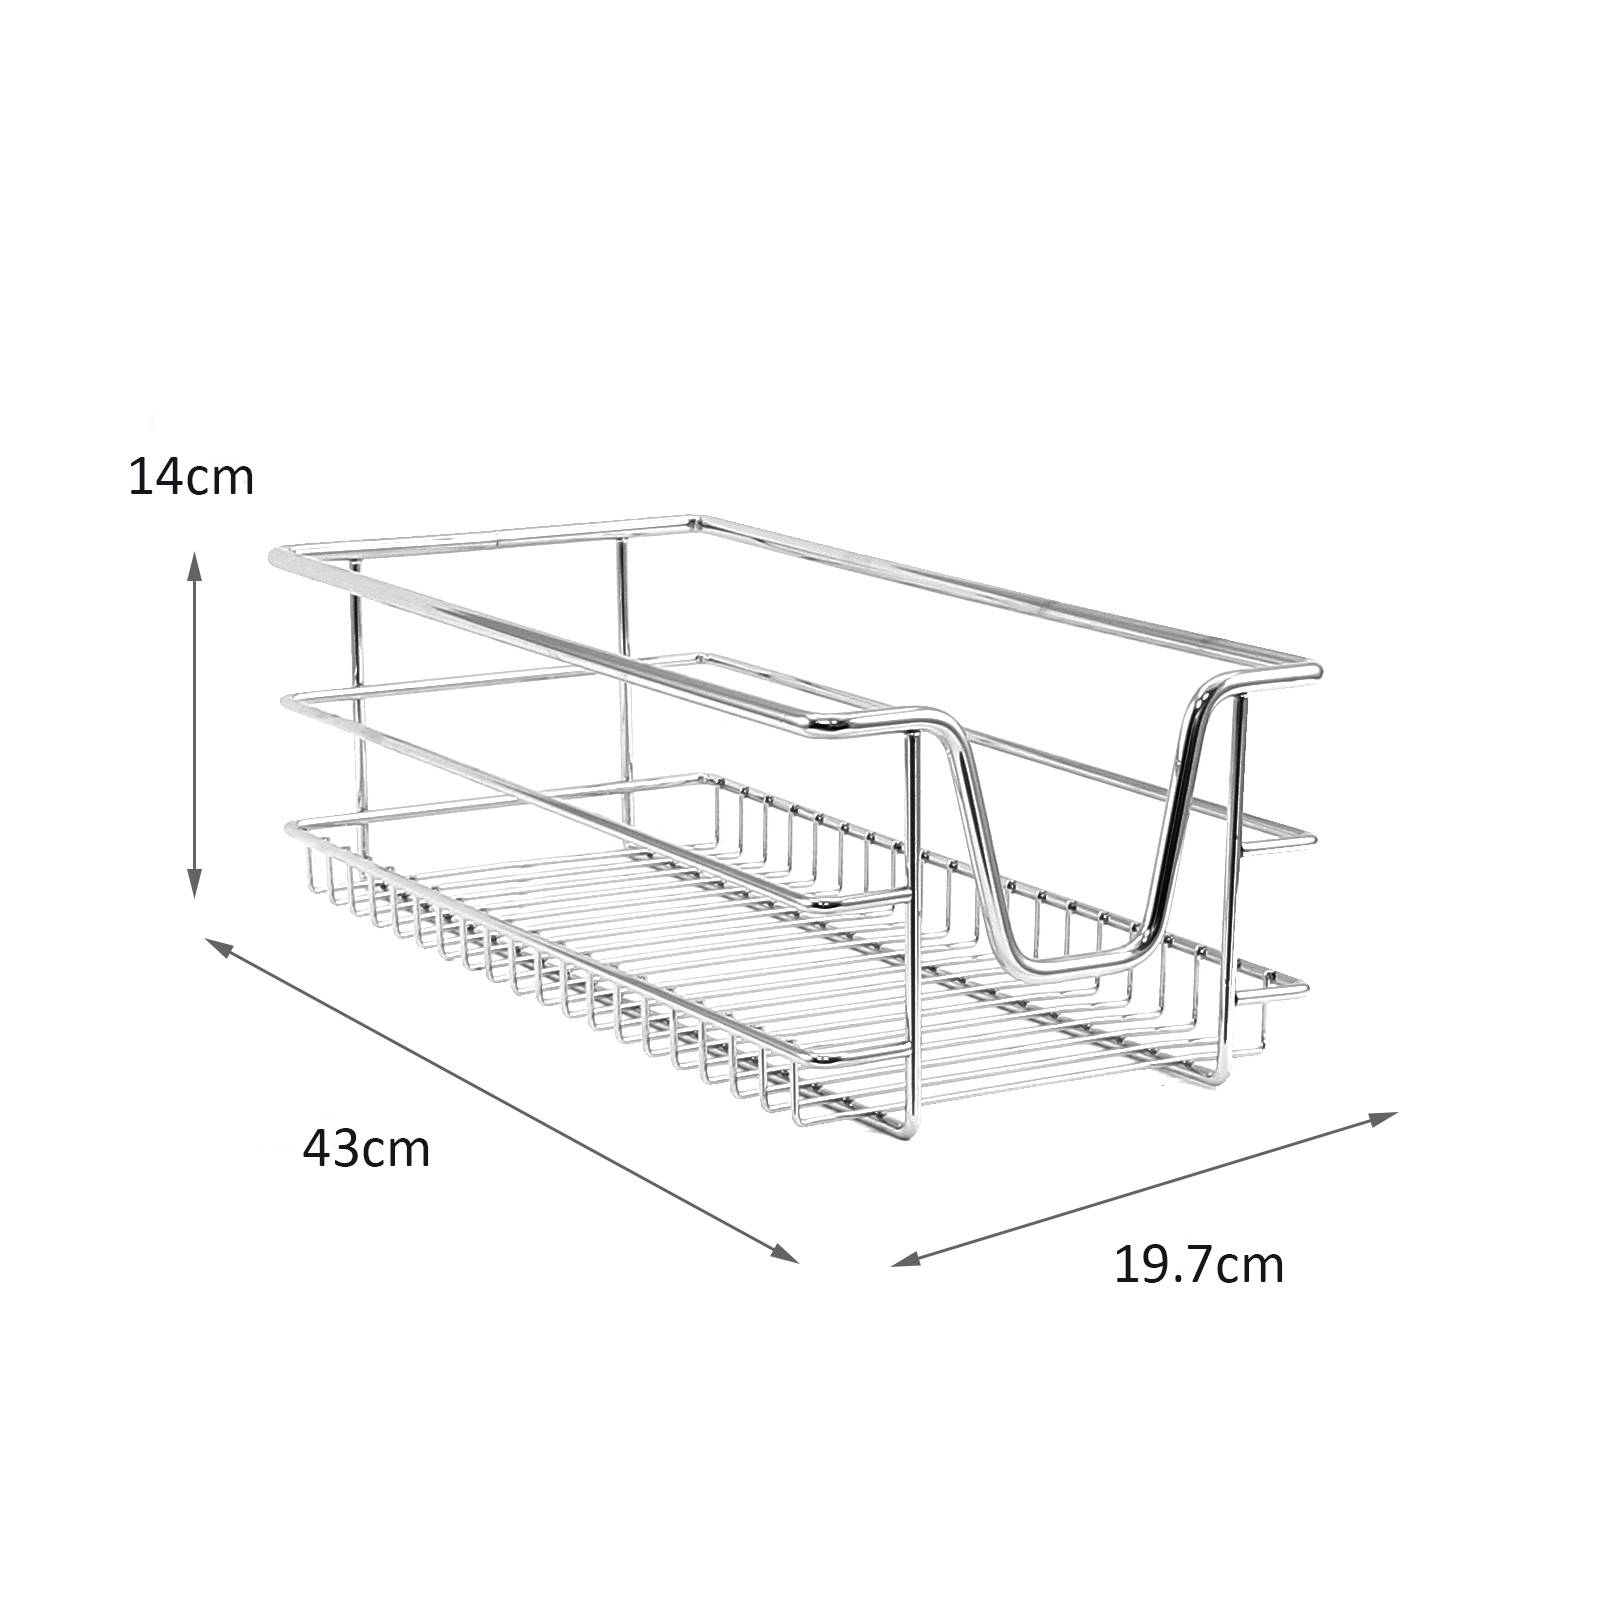 3 Kitchen Wire Baskets Pull Out Storage Drawer Slide Out